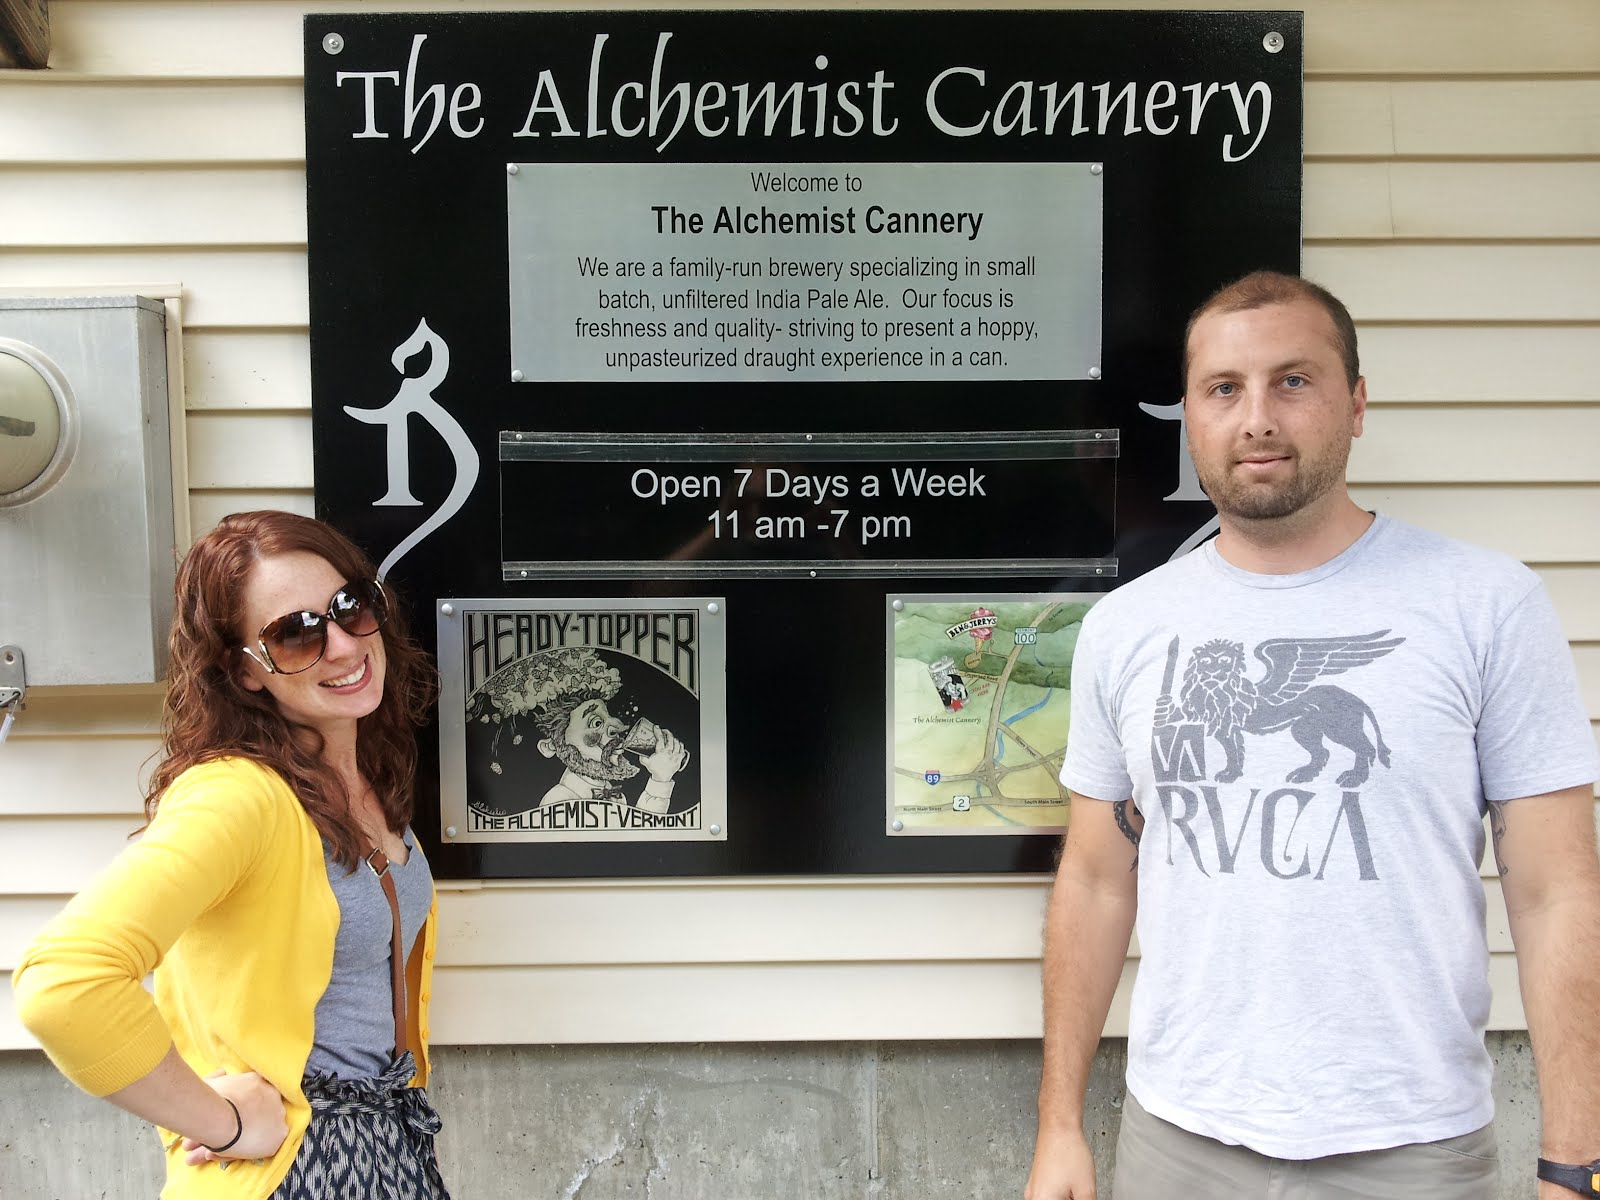 non snob beer reviews the alchemist brewery cannery the alchemist brewery cannery